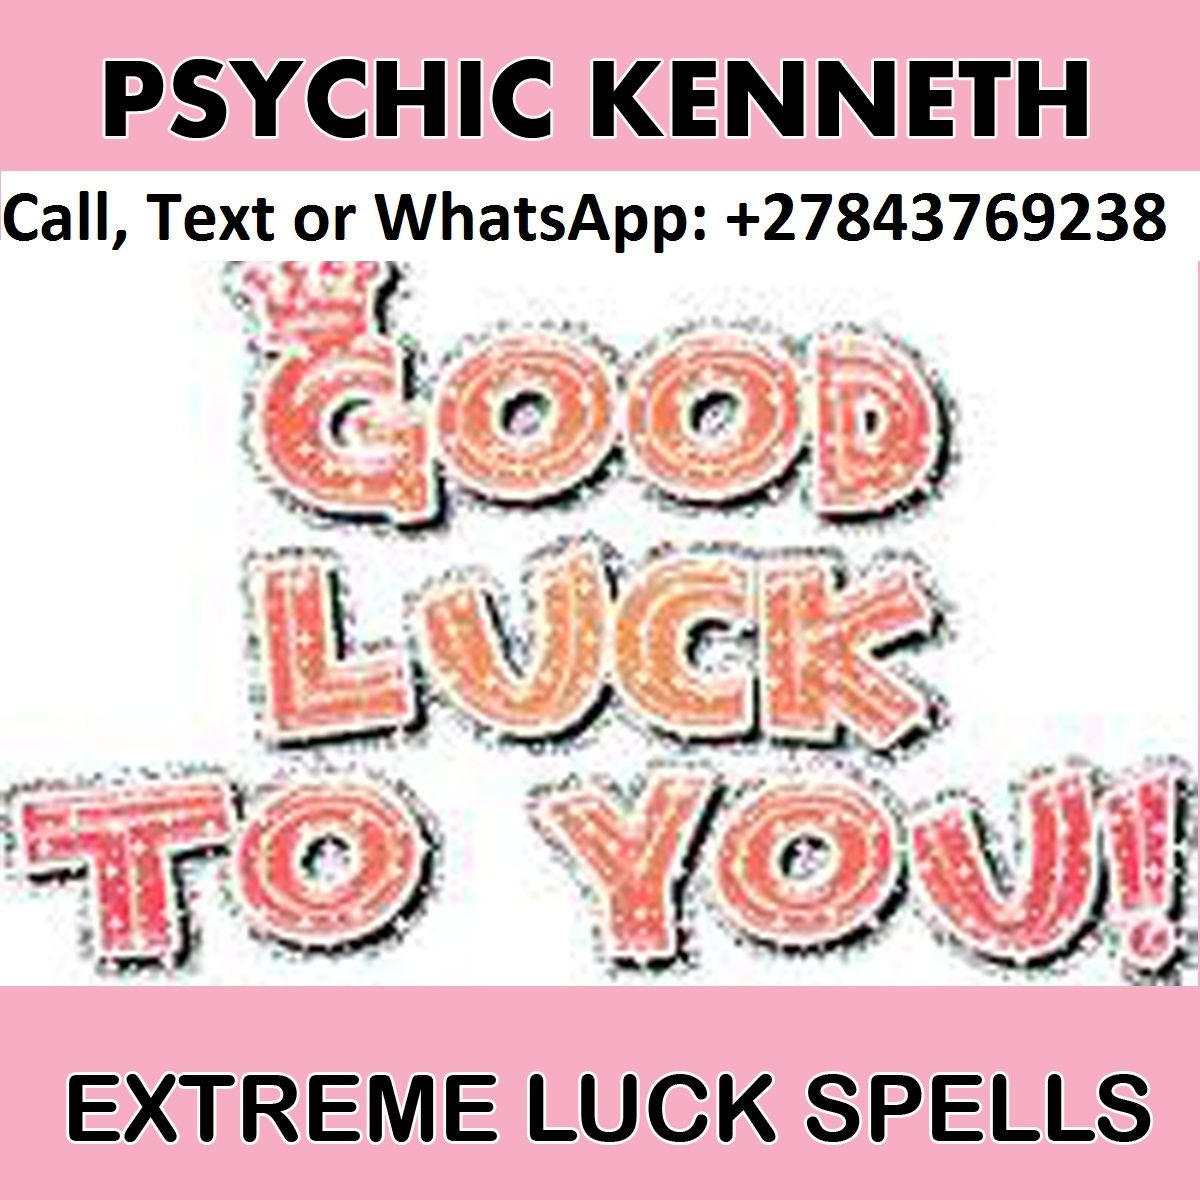 Love Spells South Africa   How to get Psychic surgery   Call   WhatsApp: +27843769238